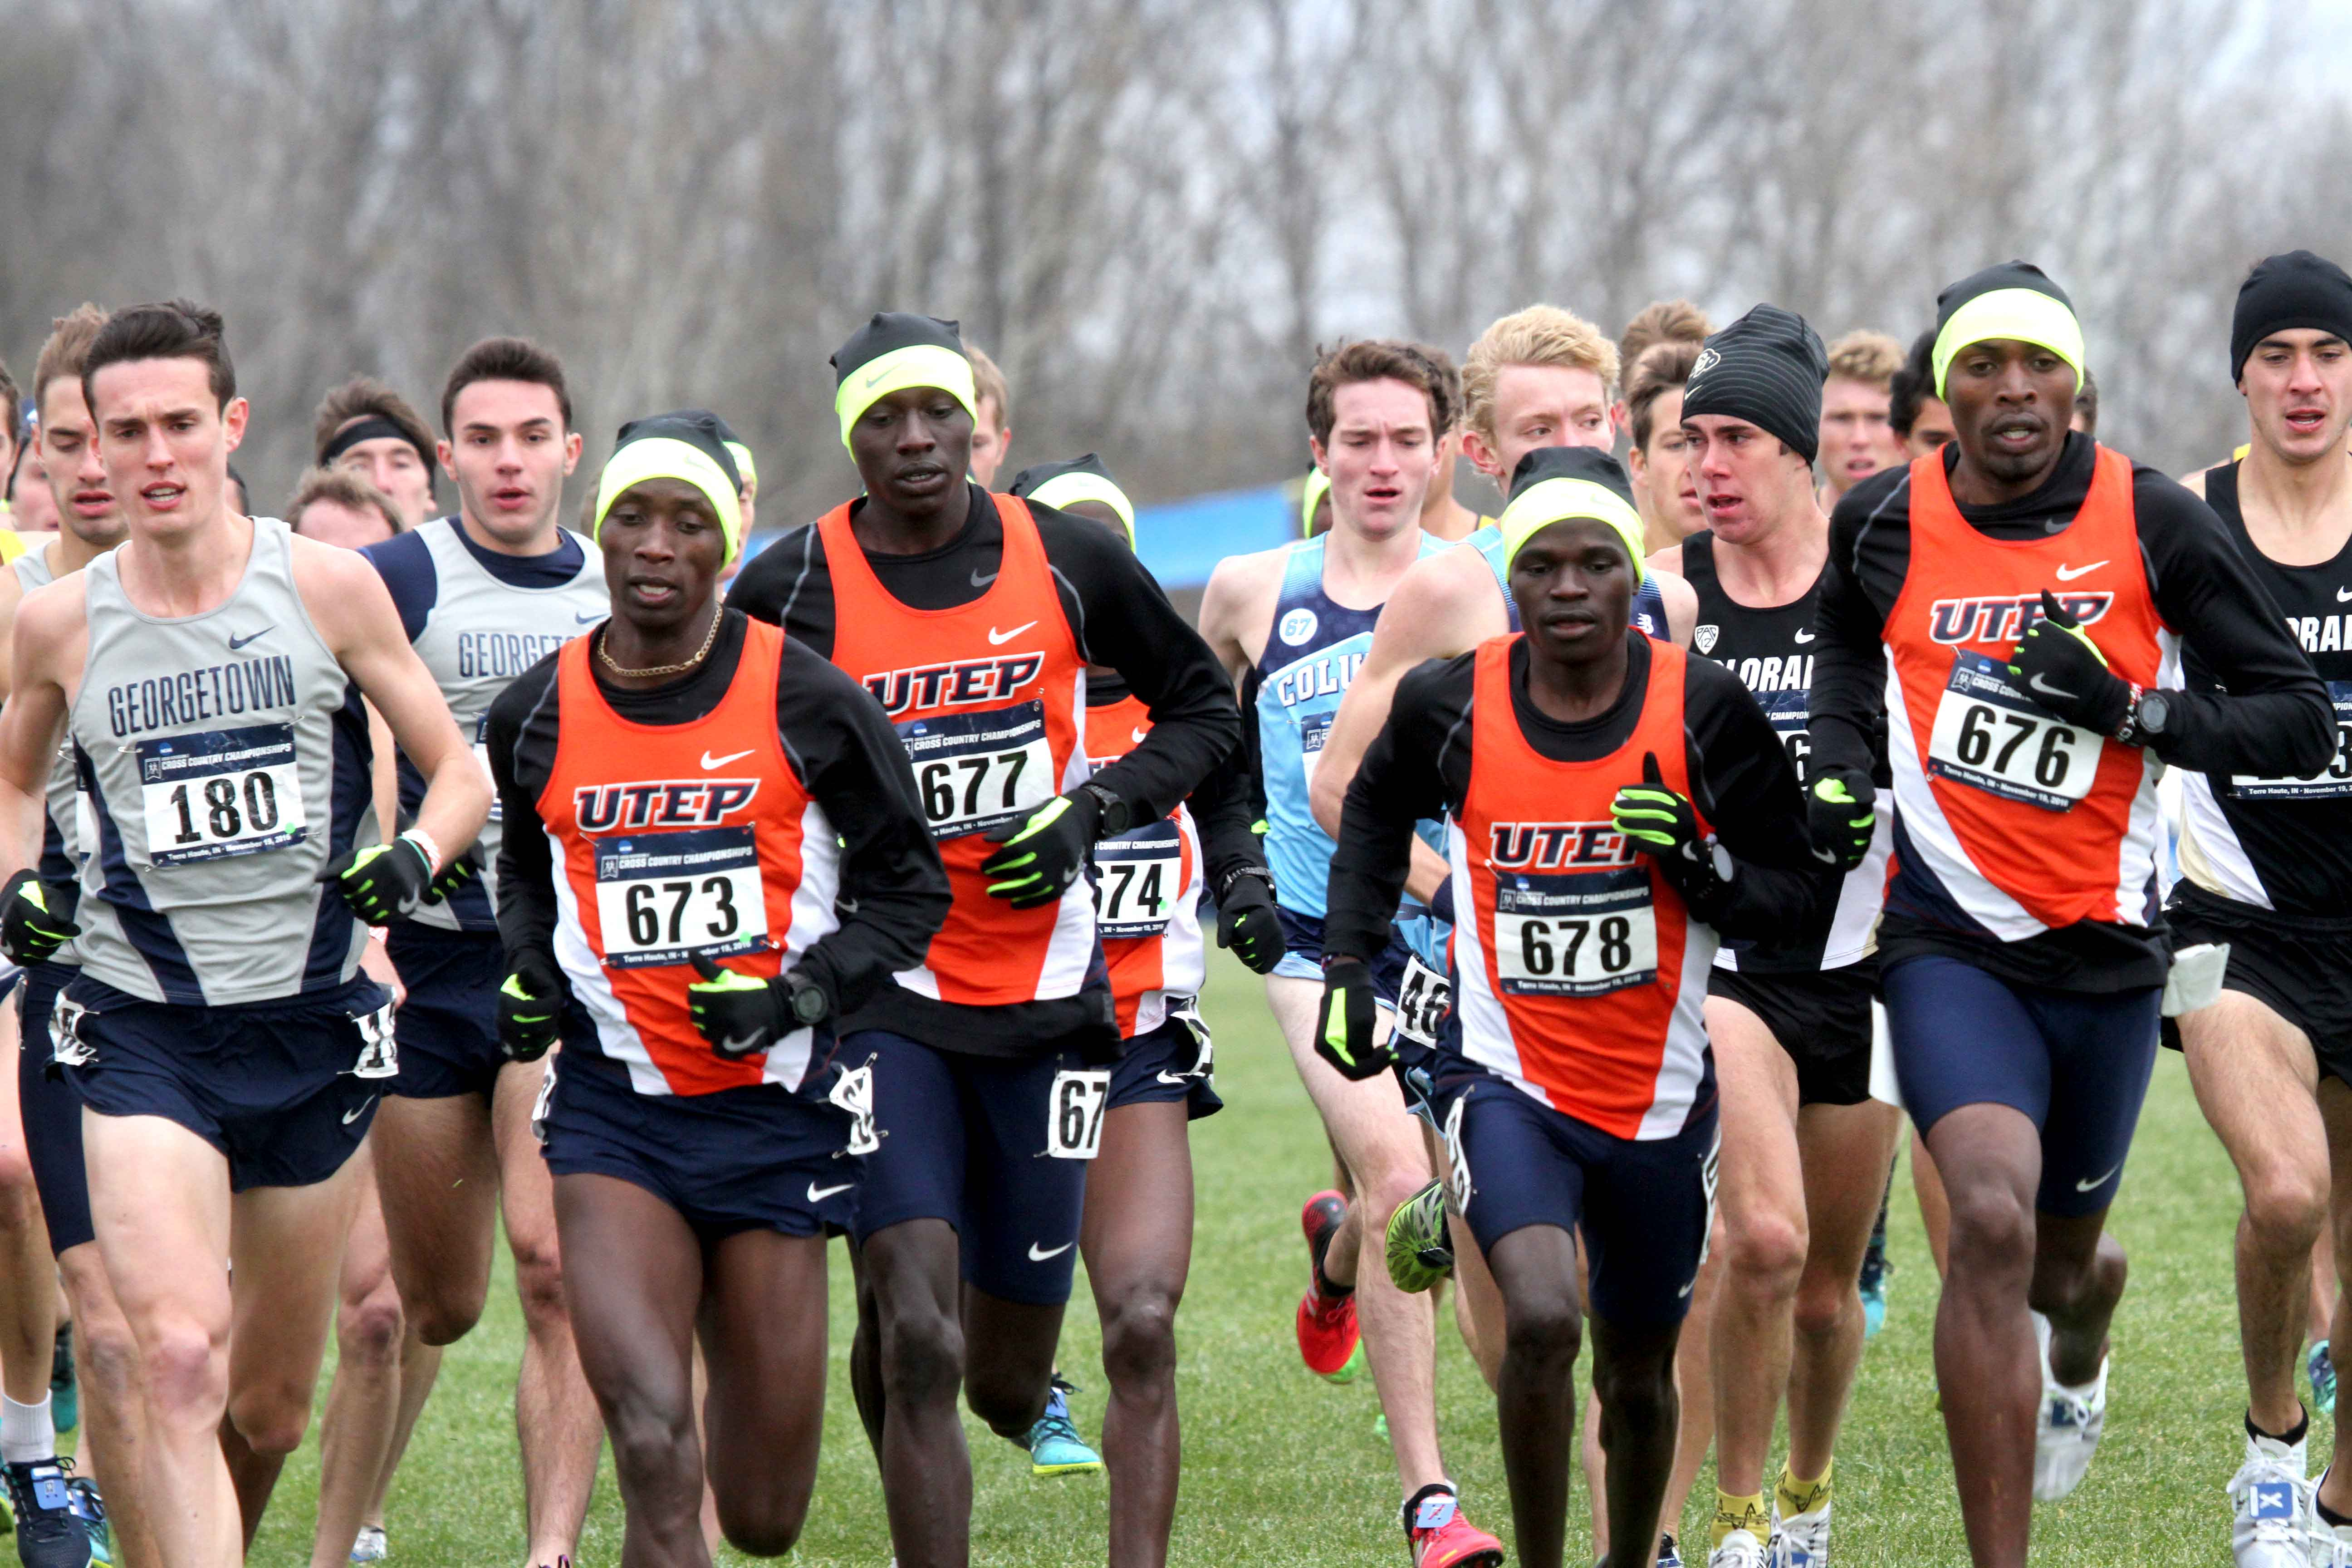 Sophomore cross country runner Antony Kosgei (#678) was named to the C-USA Honor Roll for his excellence in the classroom.